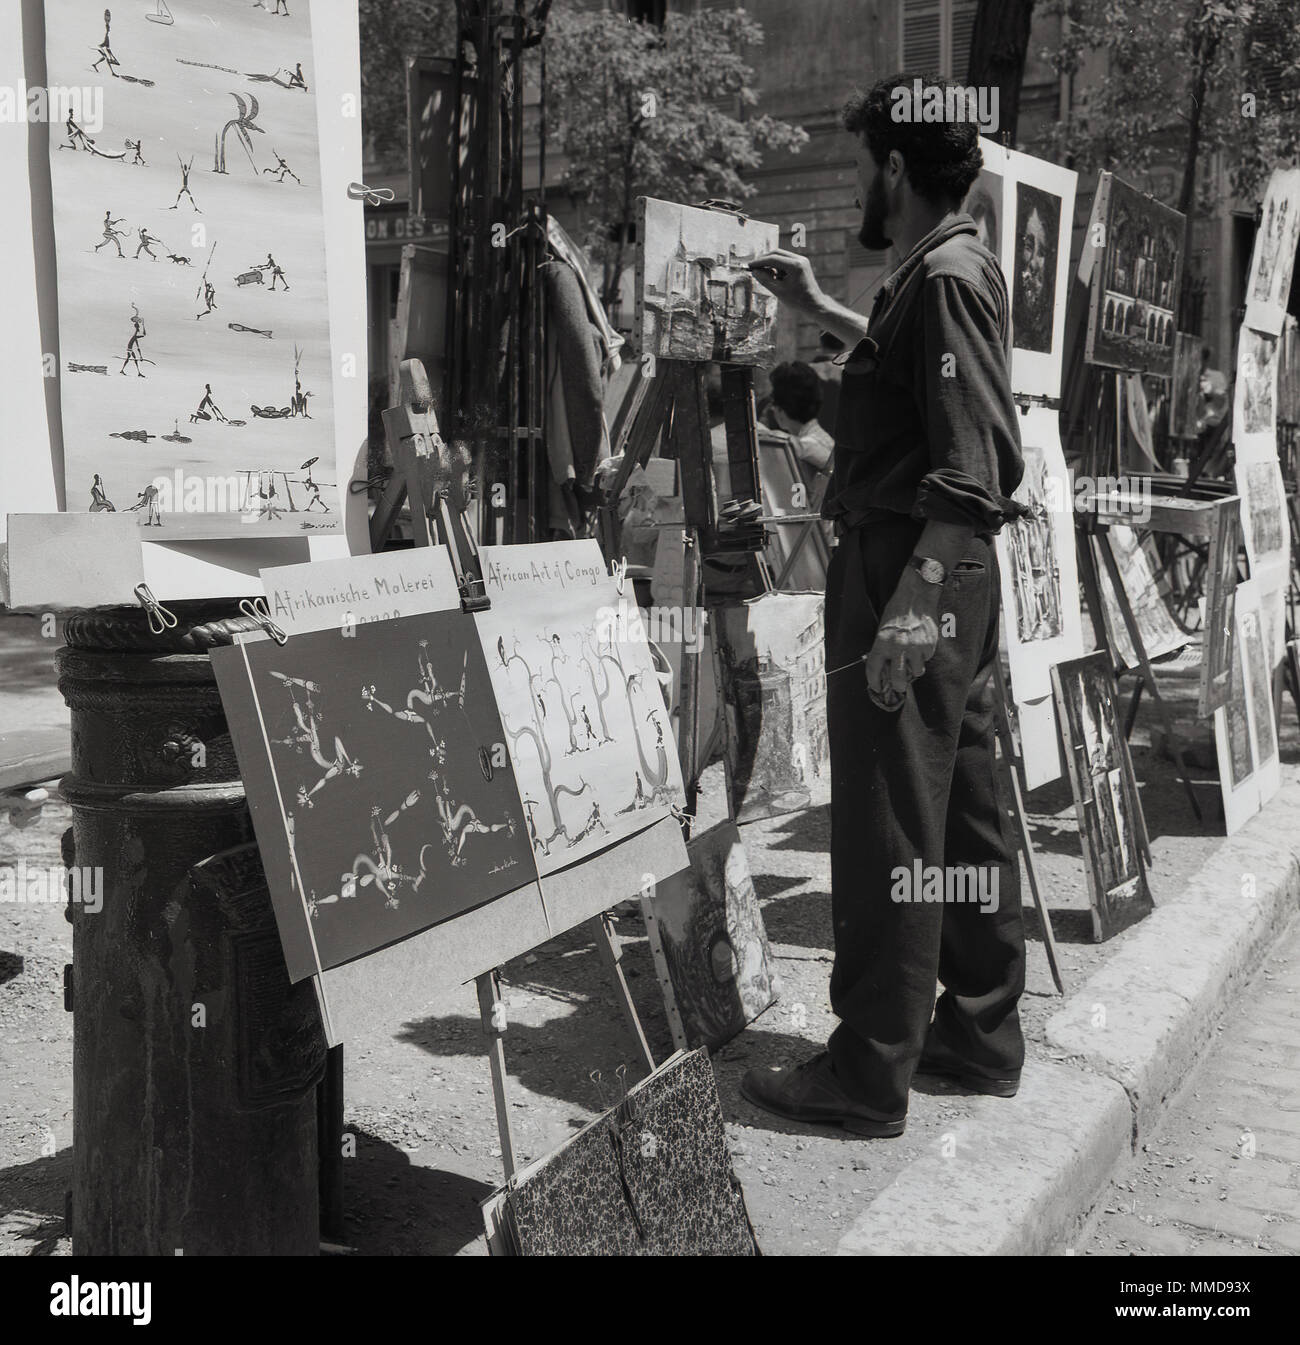 1950s, historical picture of a male street artist painting on a canvas at the Place du Tertre at Monmartre, Paris, France, an area famous for its artists and artistic history, - Stock Image